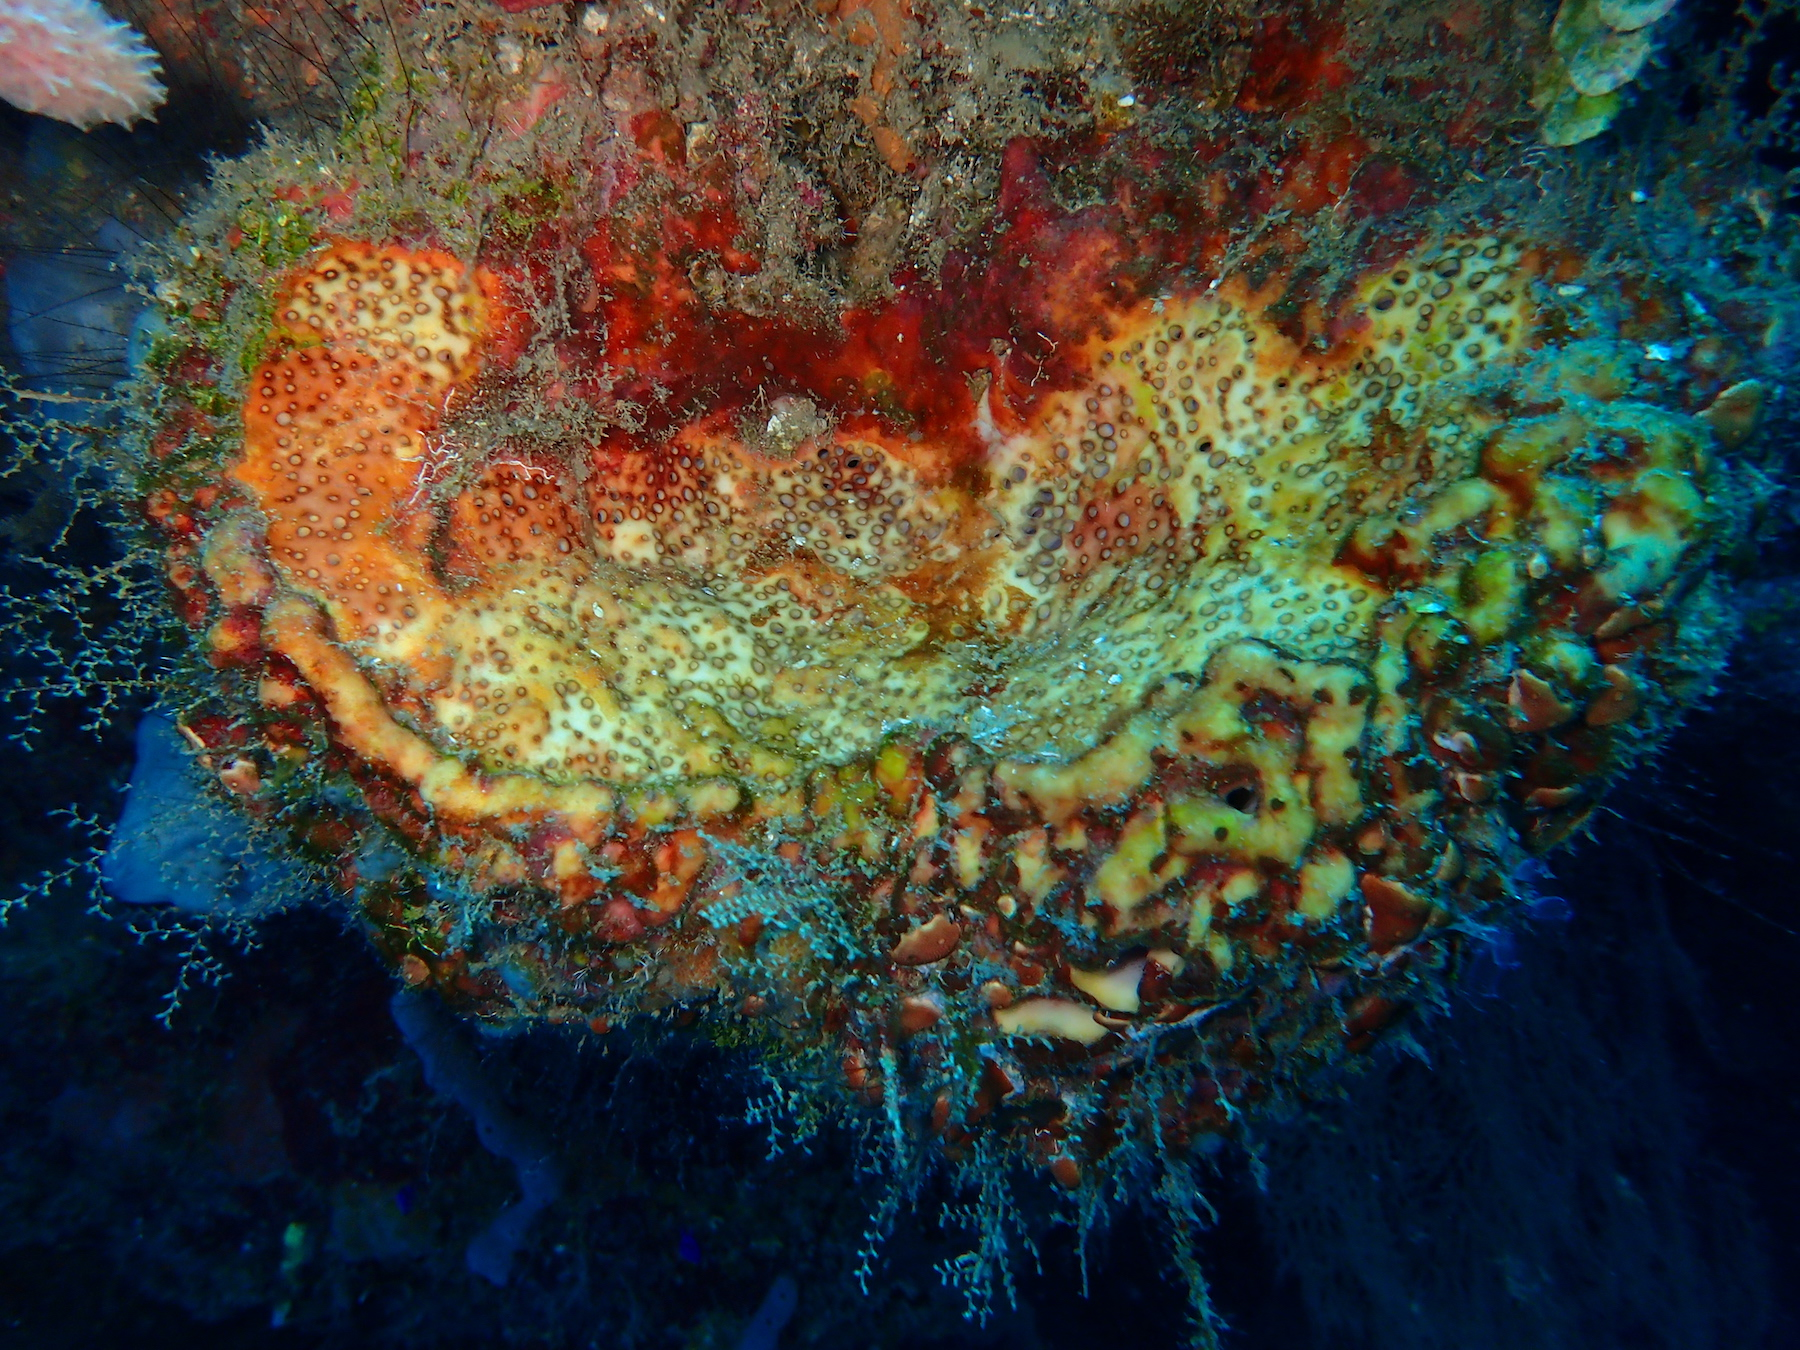 Photo of colorful coral, by Vera Gaddi, submitted for the CIHF photo competition